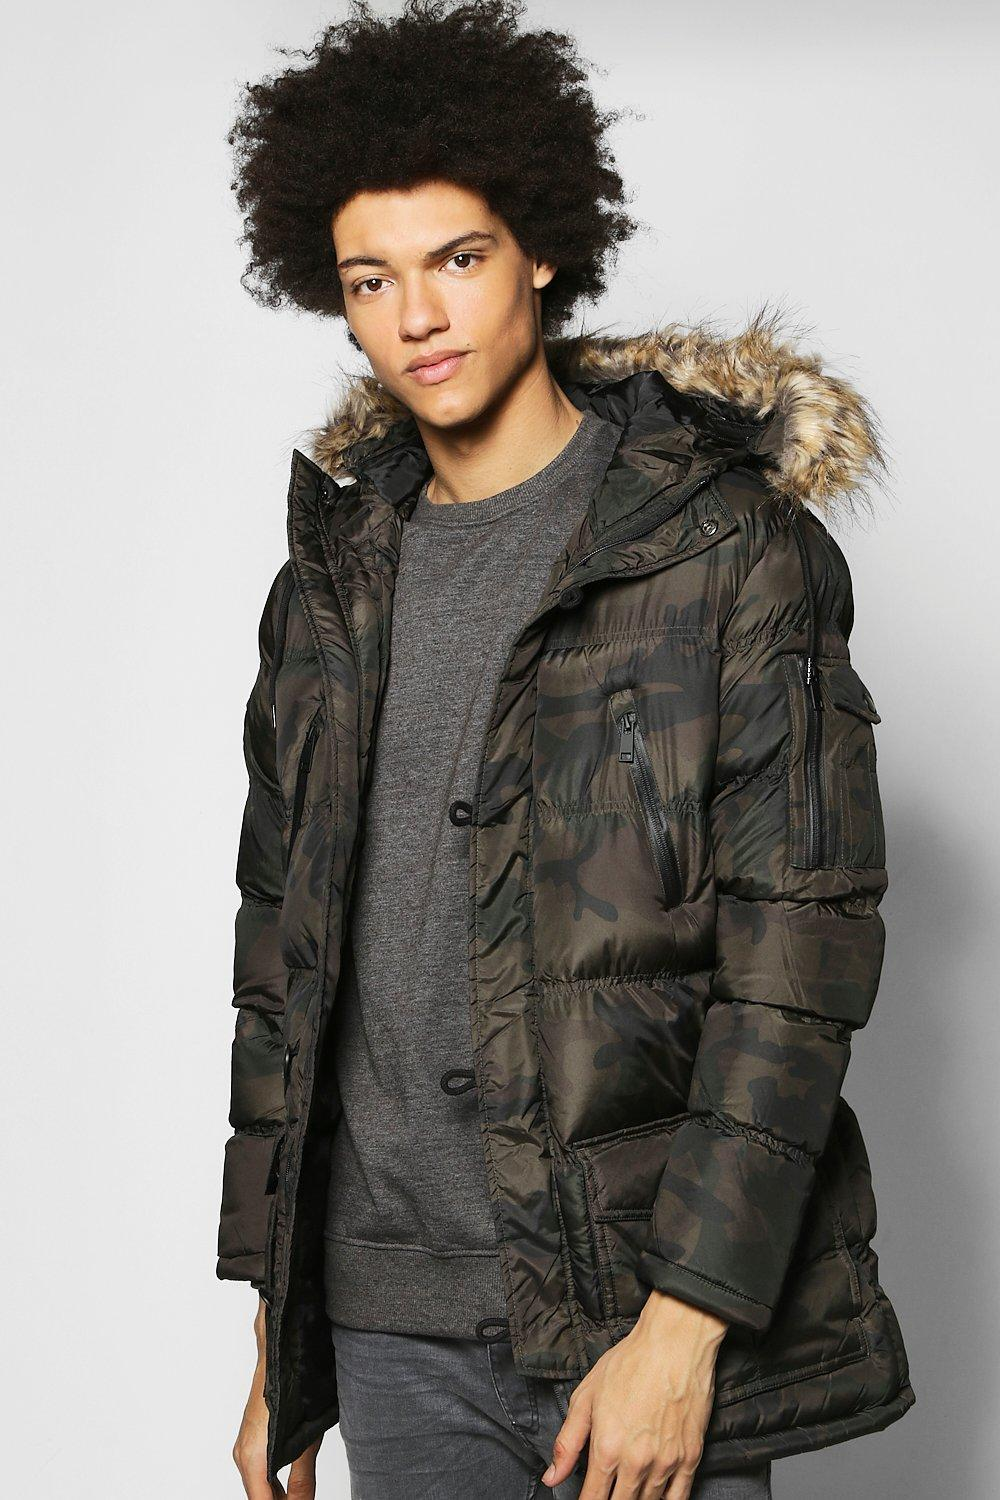 Camo Print Parka With Faux Fur Hood  camo